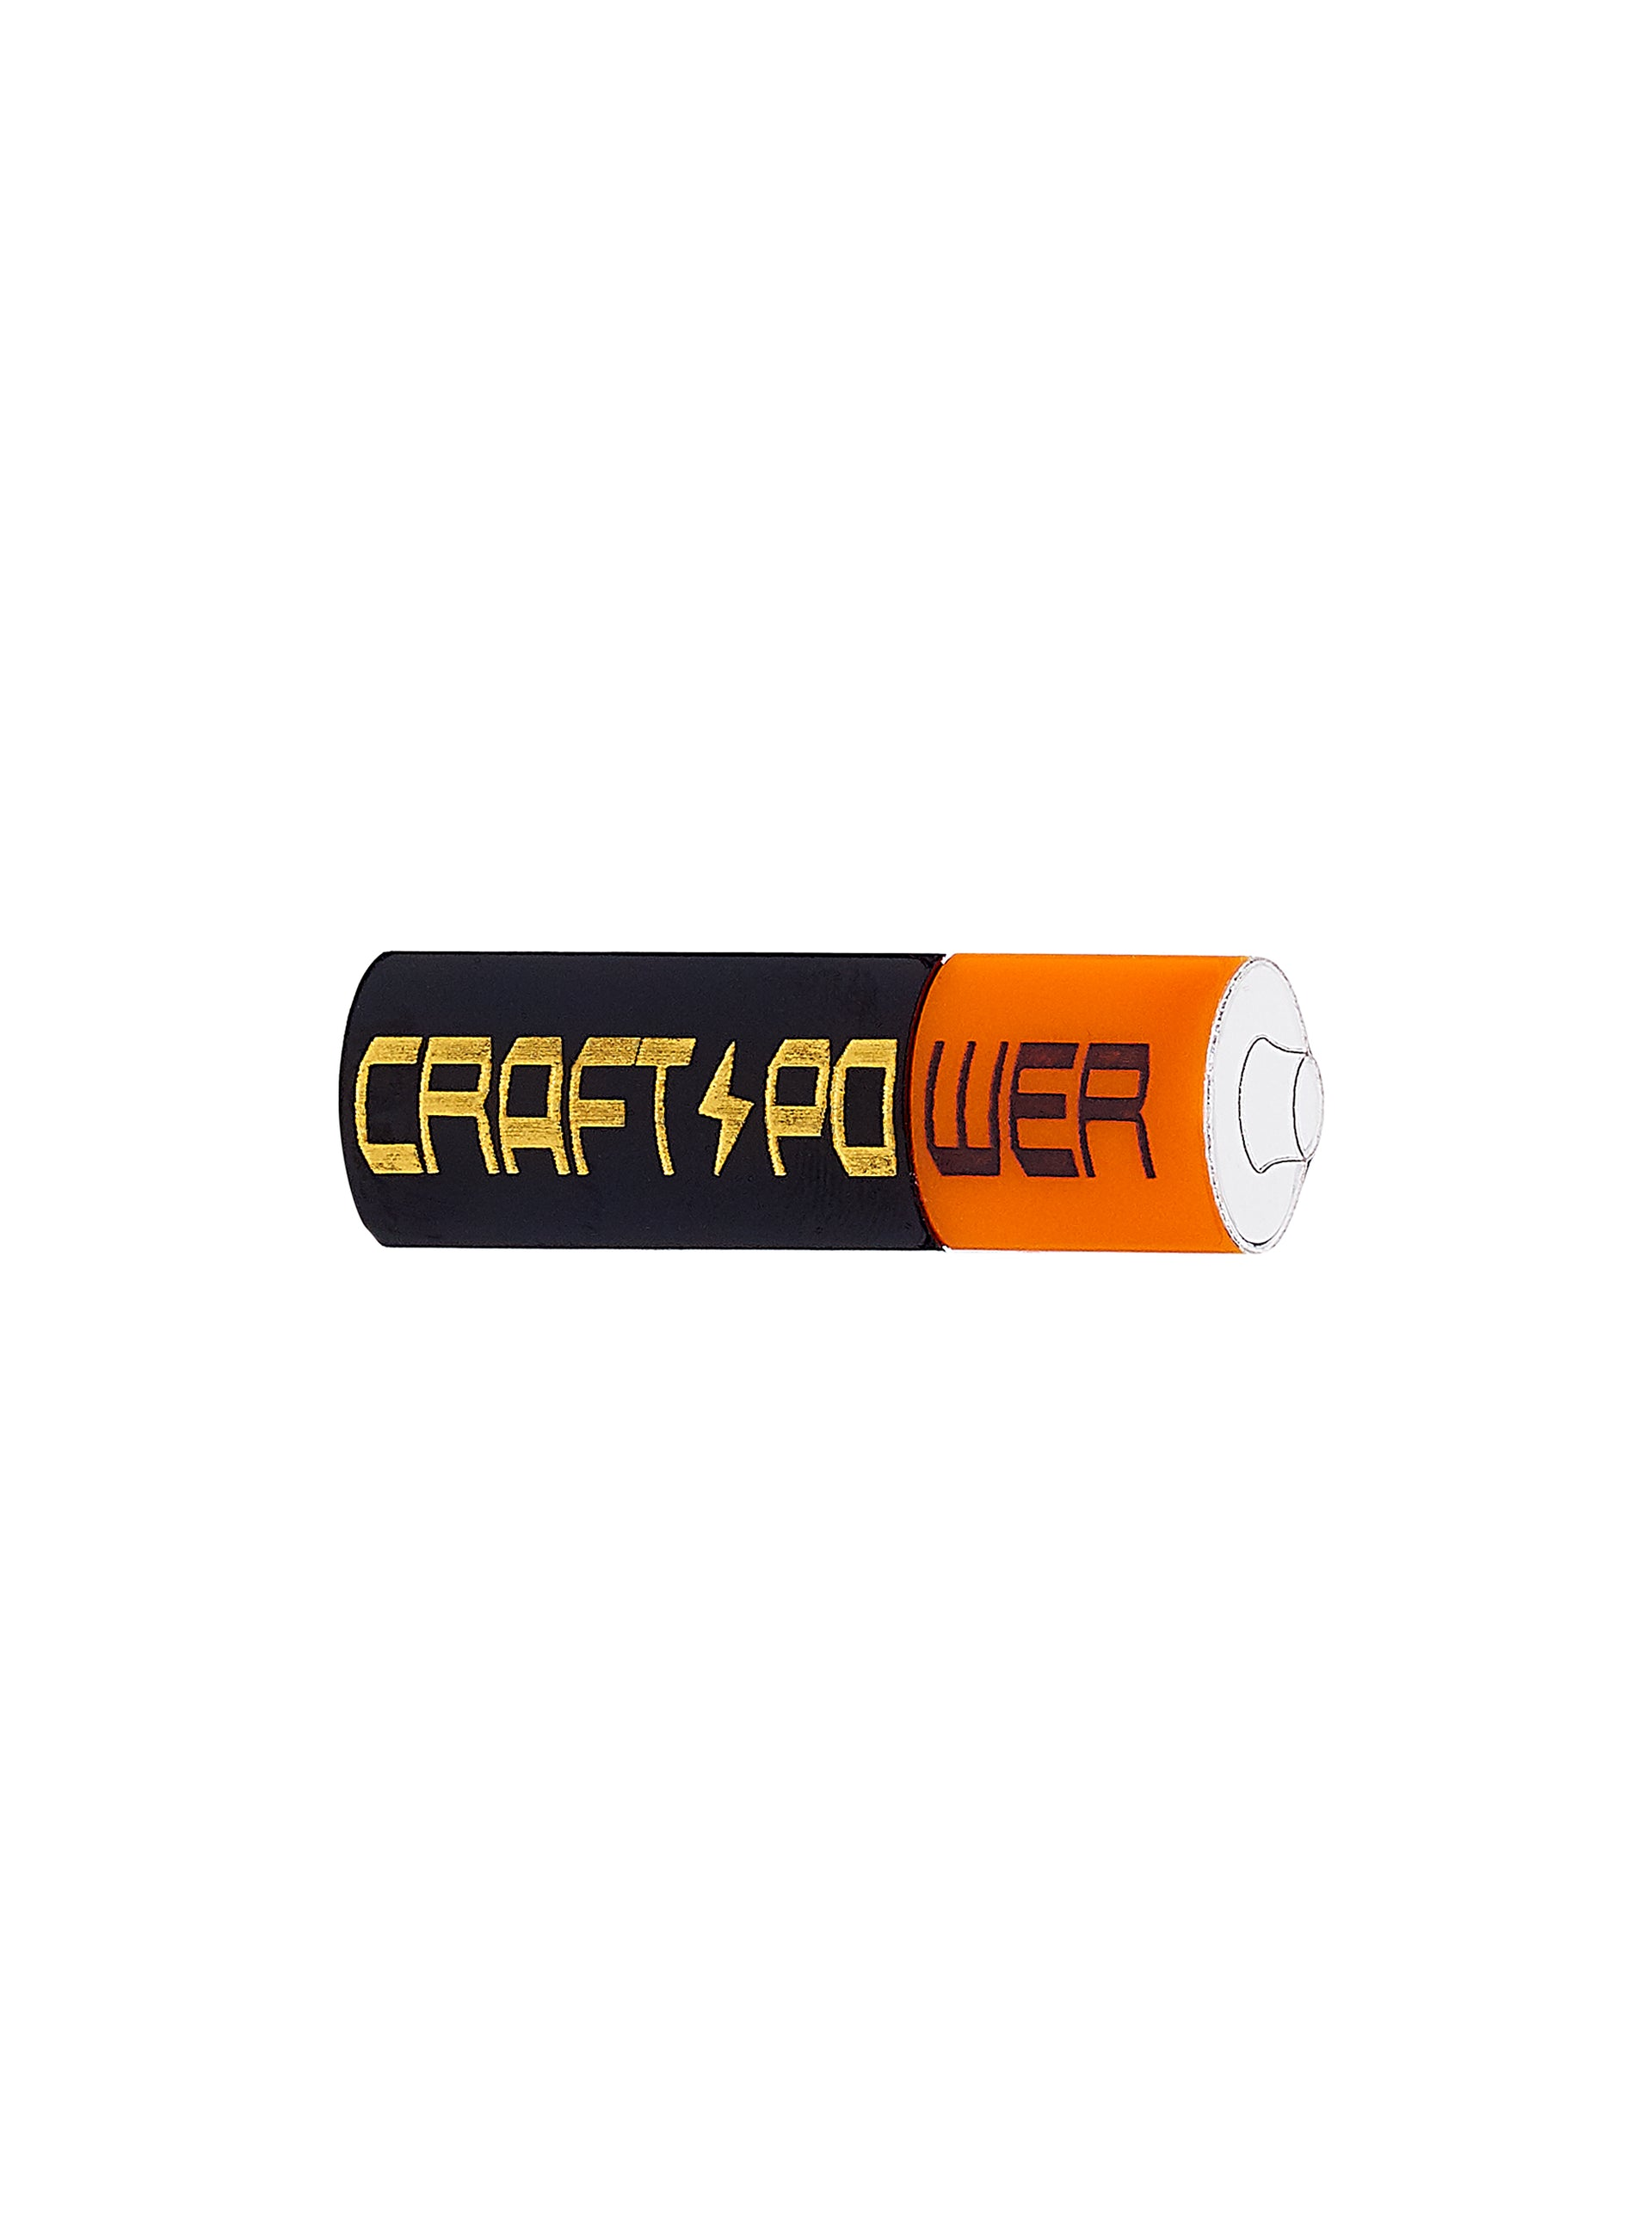 Craft Power Battery Brooch